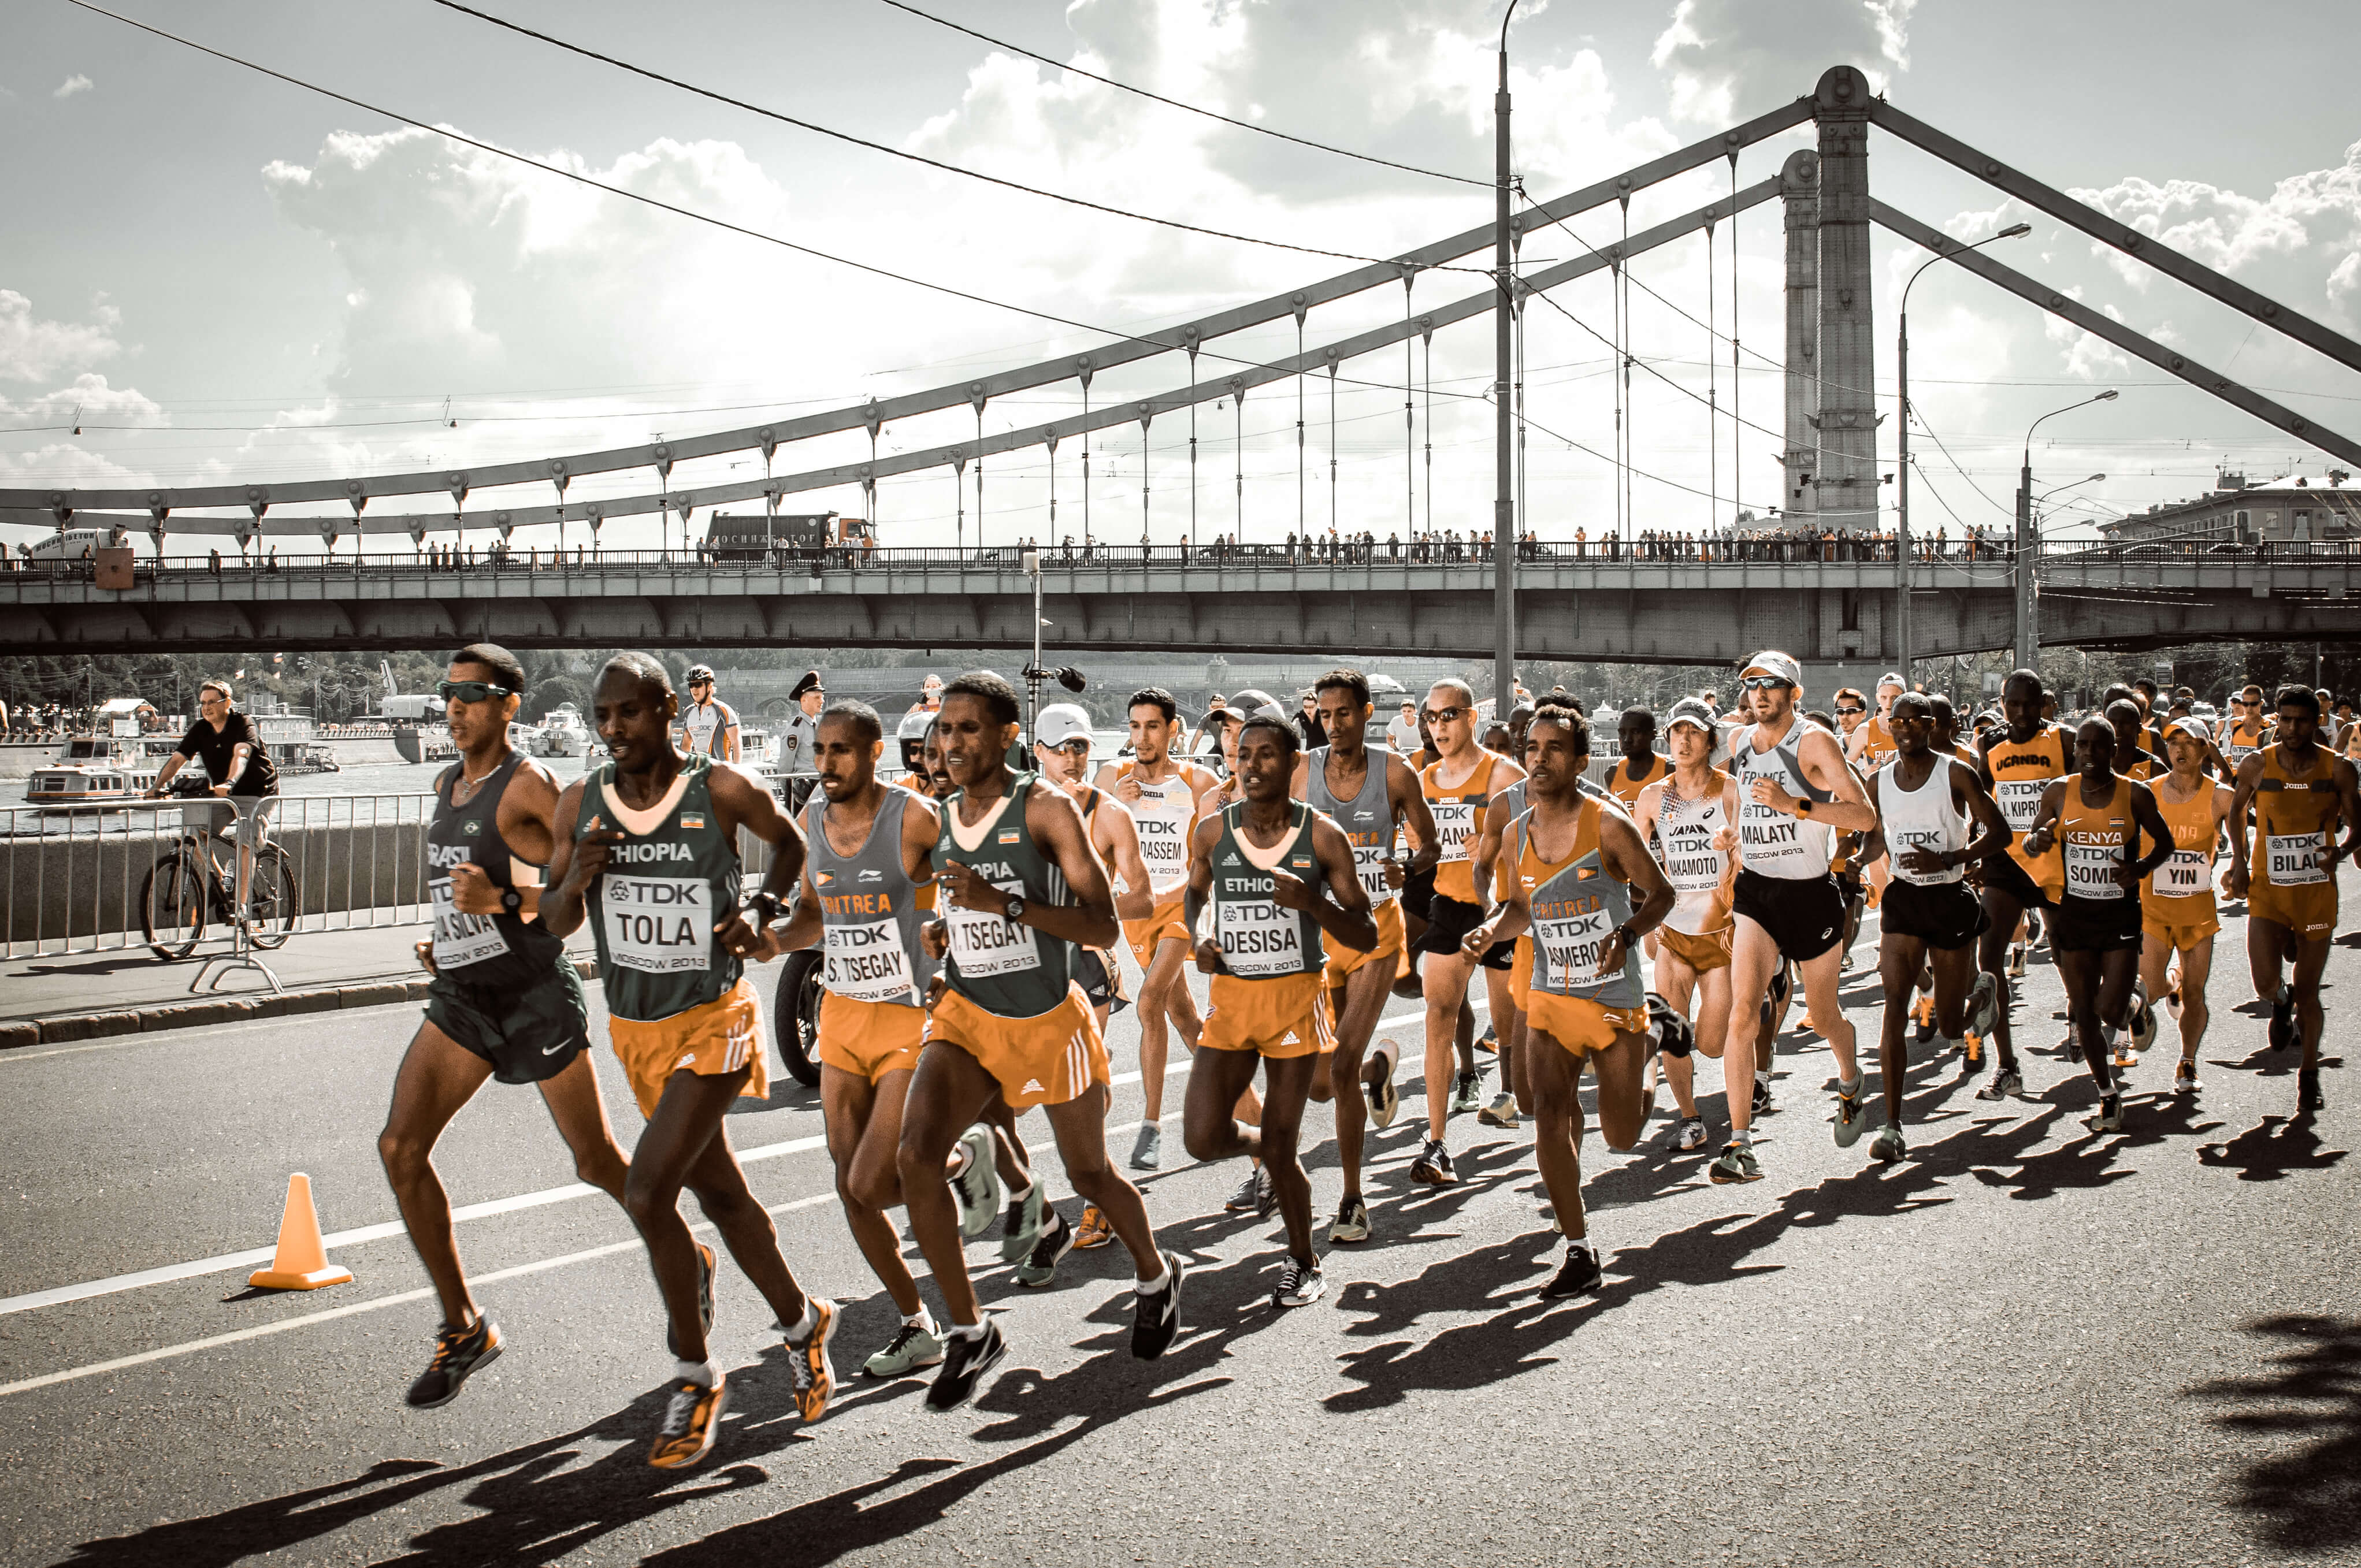 Beginner runners: Last-minute tips for your first marathon